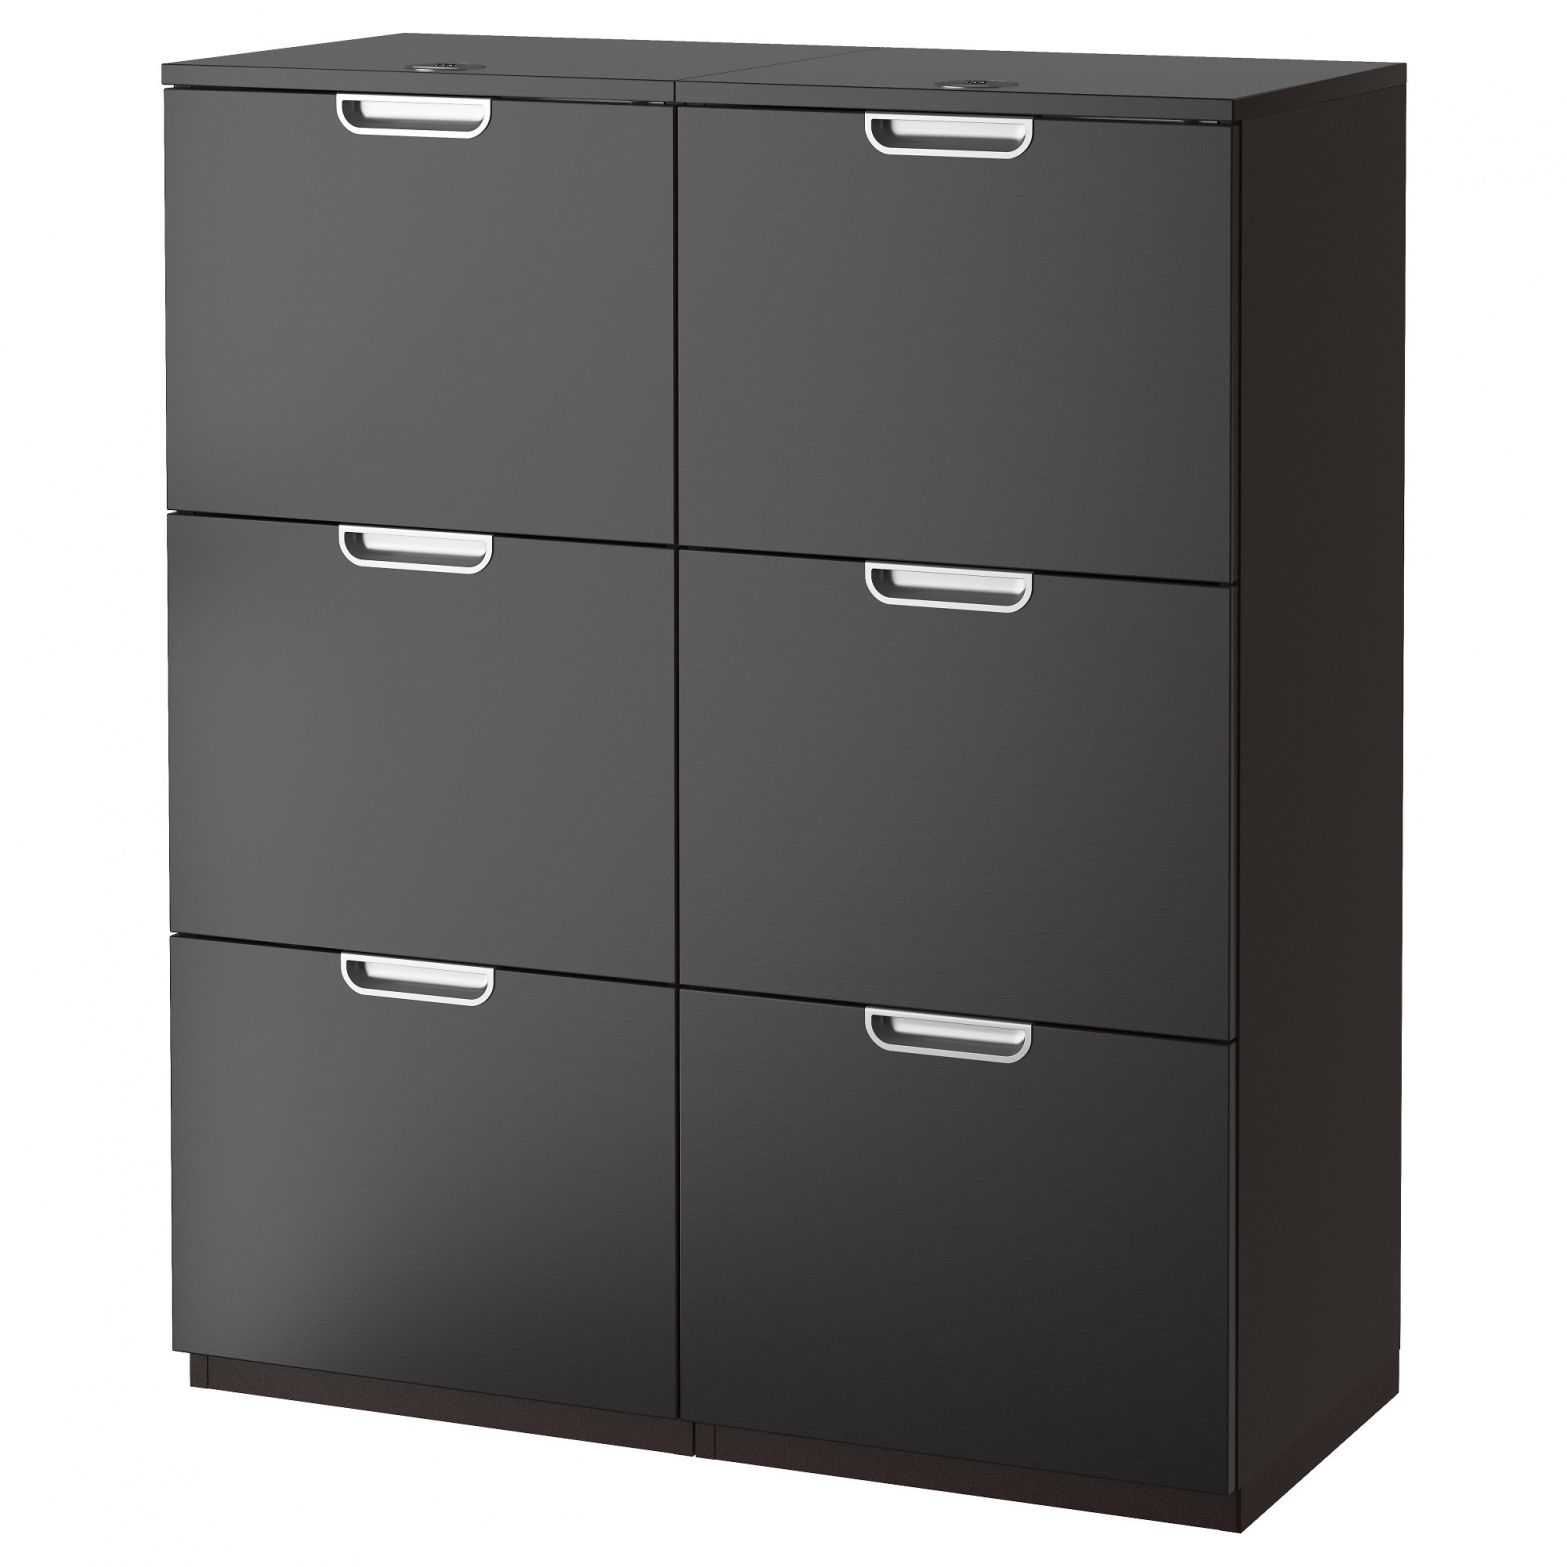 70 fice Storage Cabinets with Drawers Custom Home fice